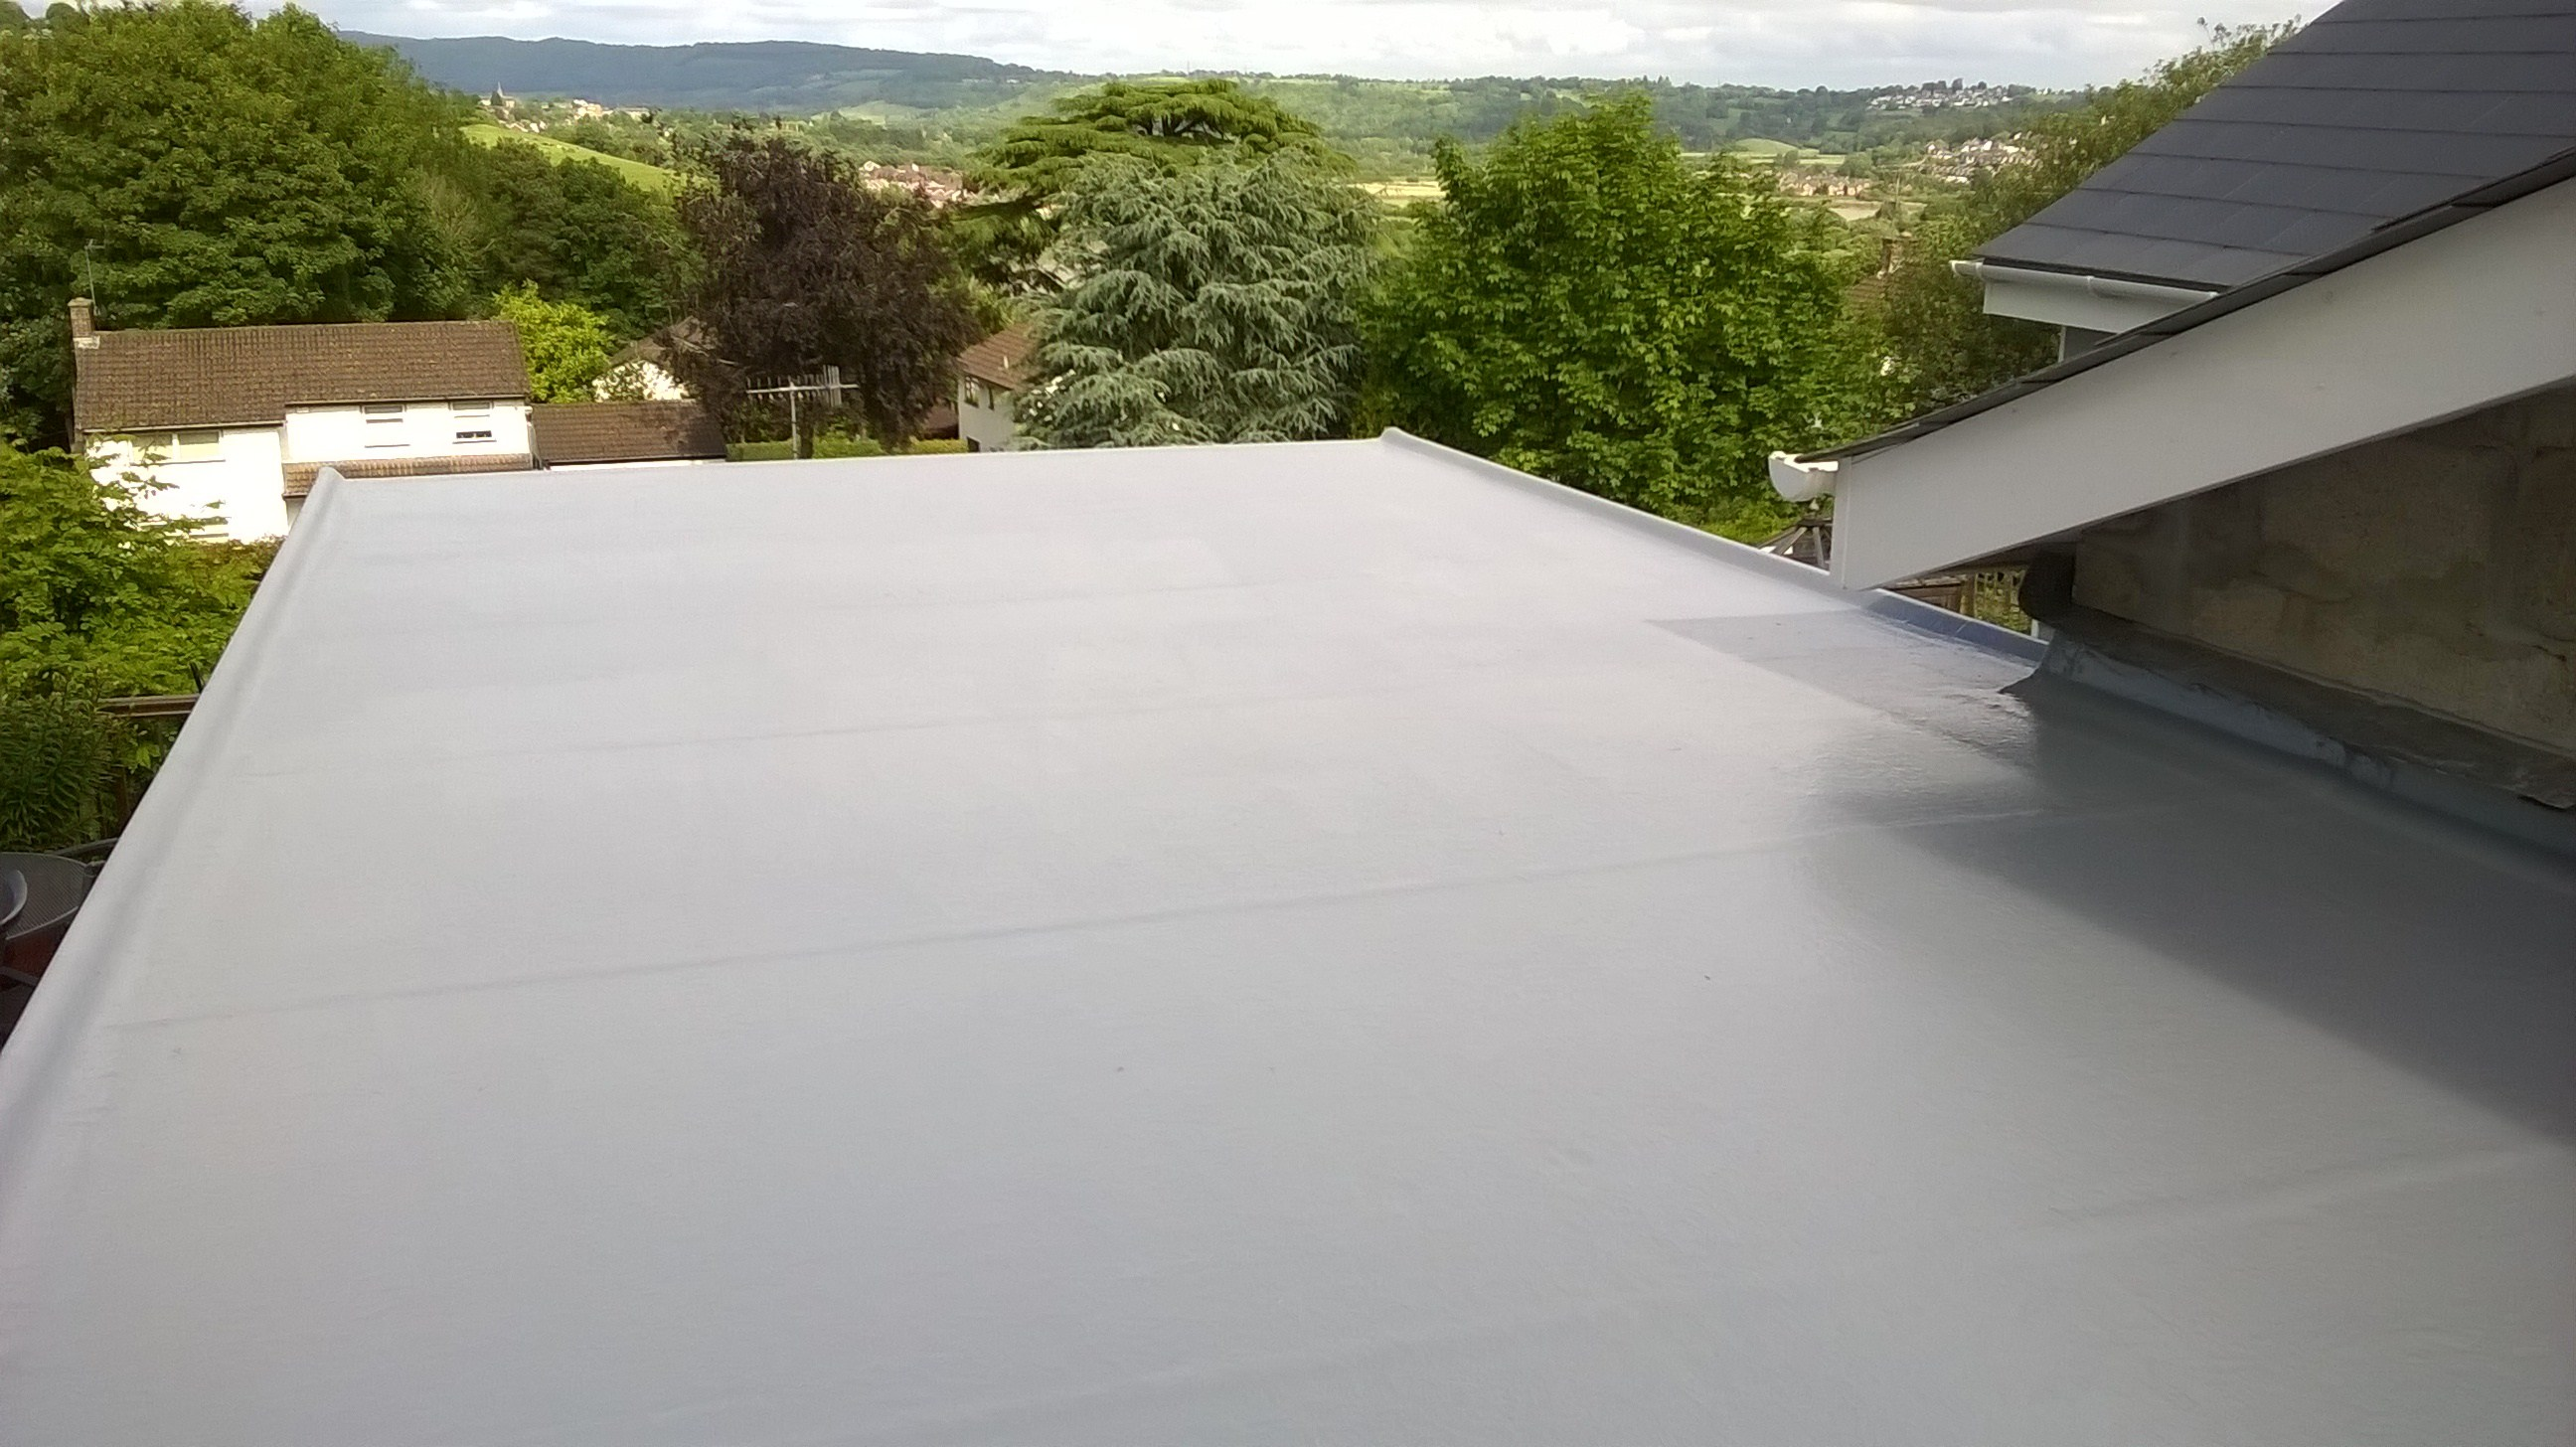 Fibreglass flat roof in Newport completed